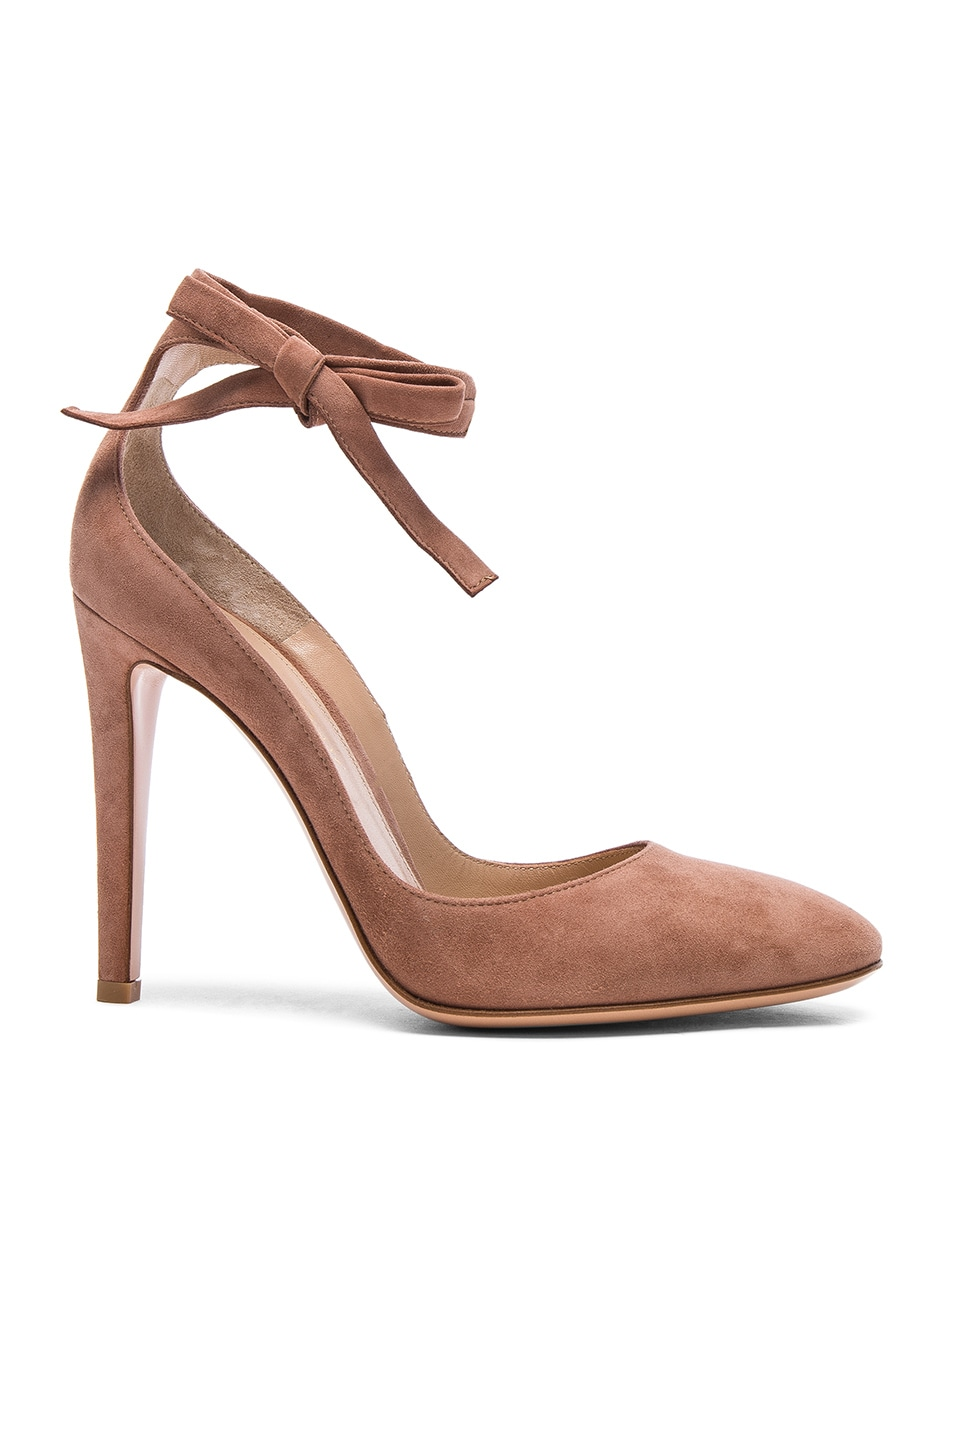 Image 1 of Gianvito Rossi Suede Carla Pumps in Praline